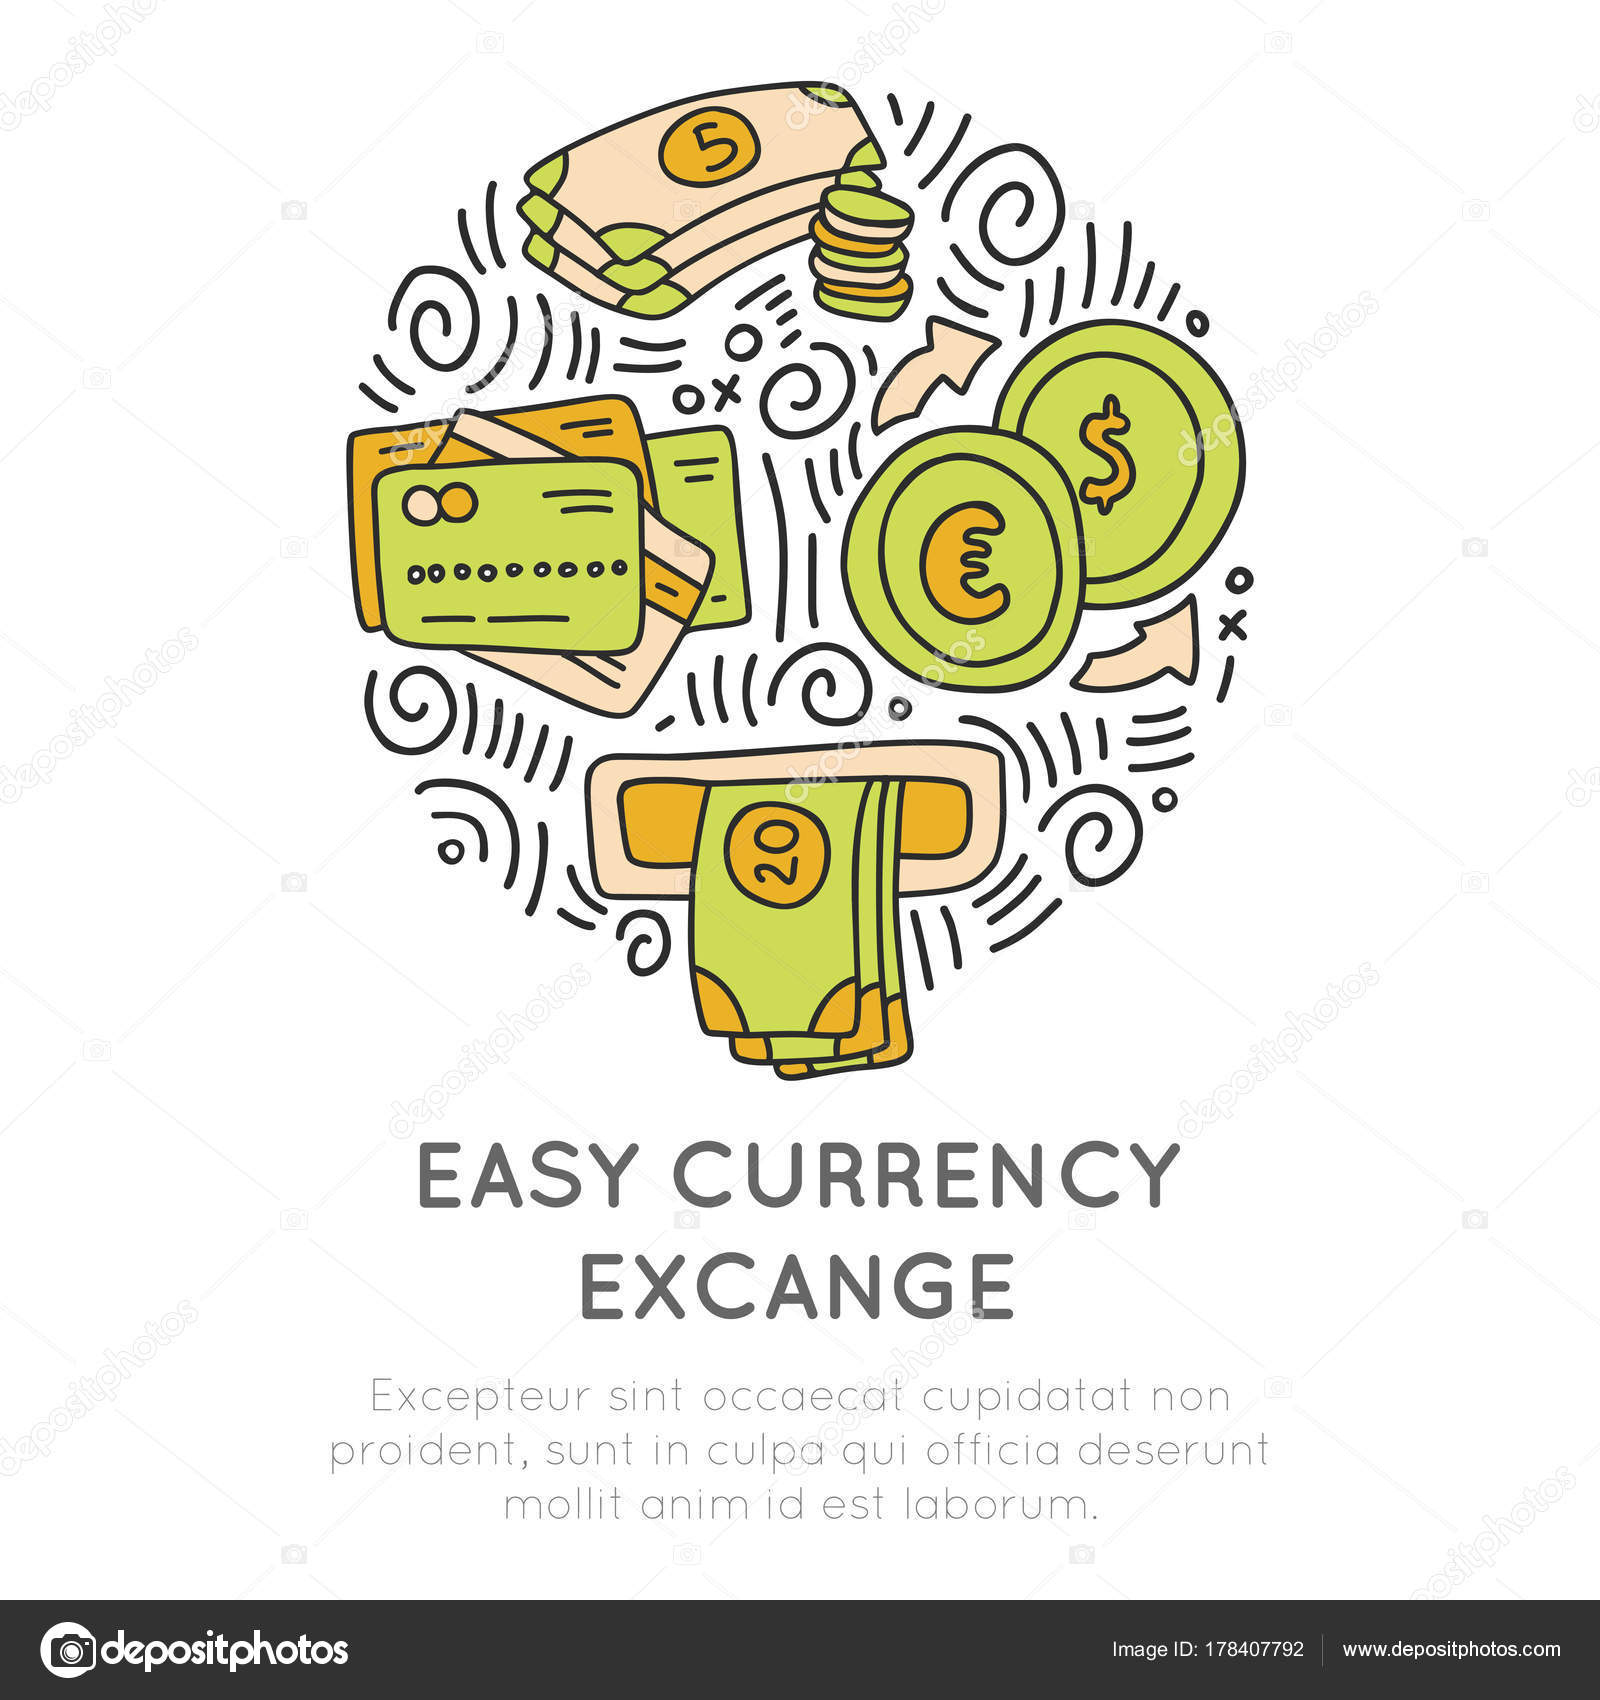 Easy currency excange in travel icon concept. Vector hand